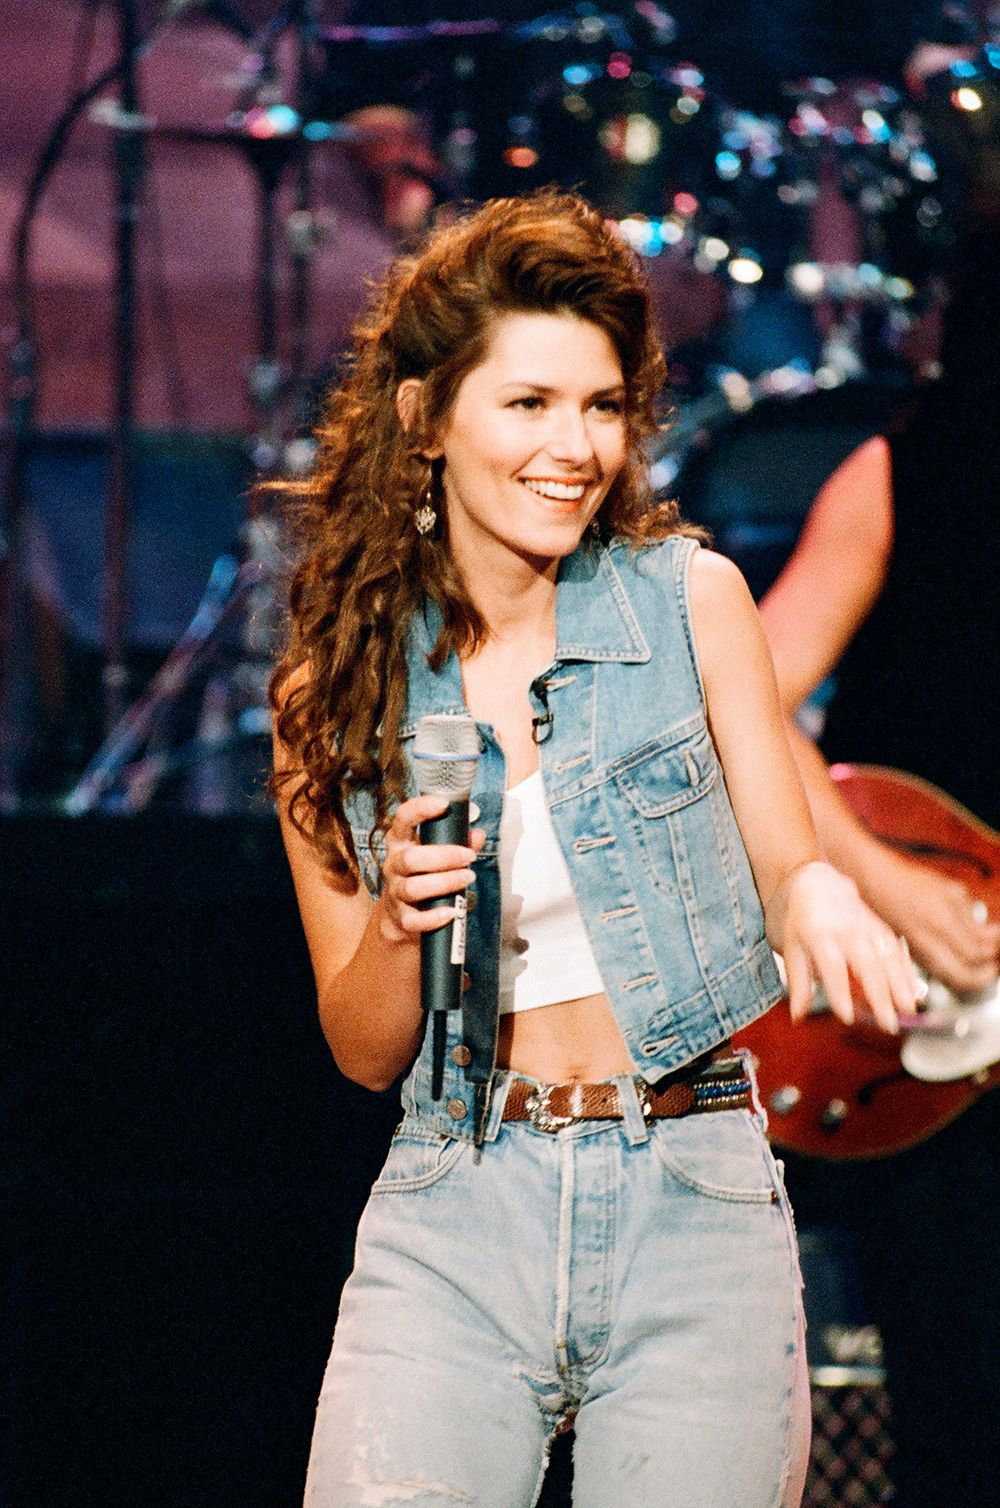 15 Best Songs About Cheating Shania Twain 90s Country Music Country Music Stars